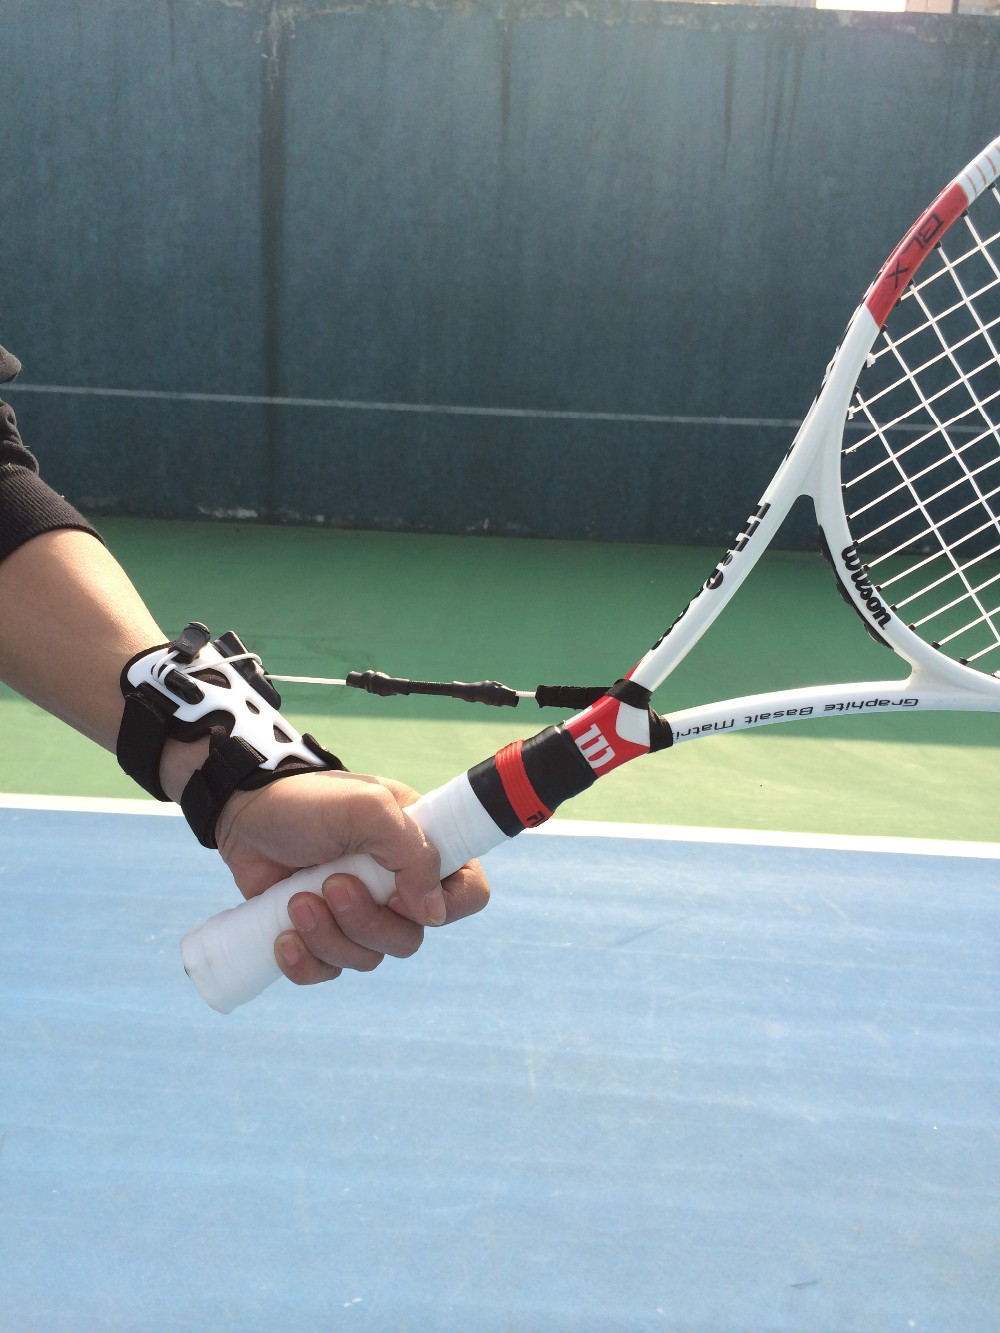 Free Shipping Tennis Fixed A Wrist Trainers Fast Master Tennis Racket Swing Main Point Correct The Wrist Movement